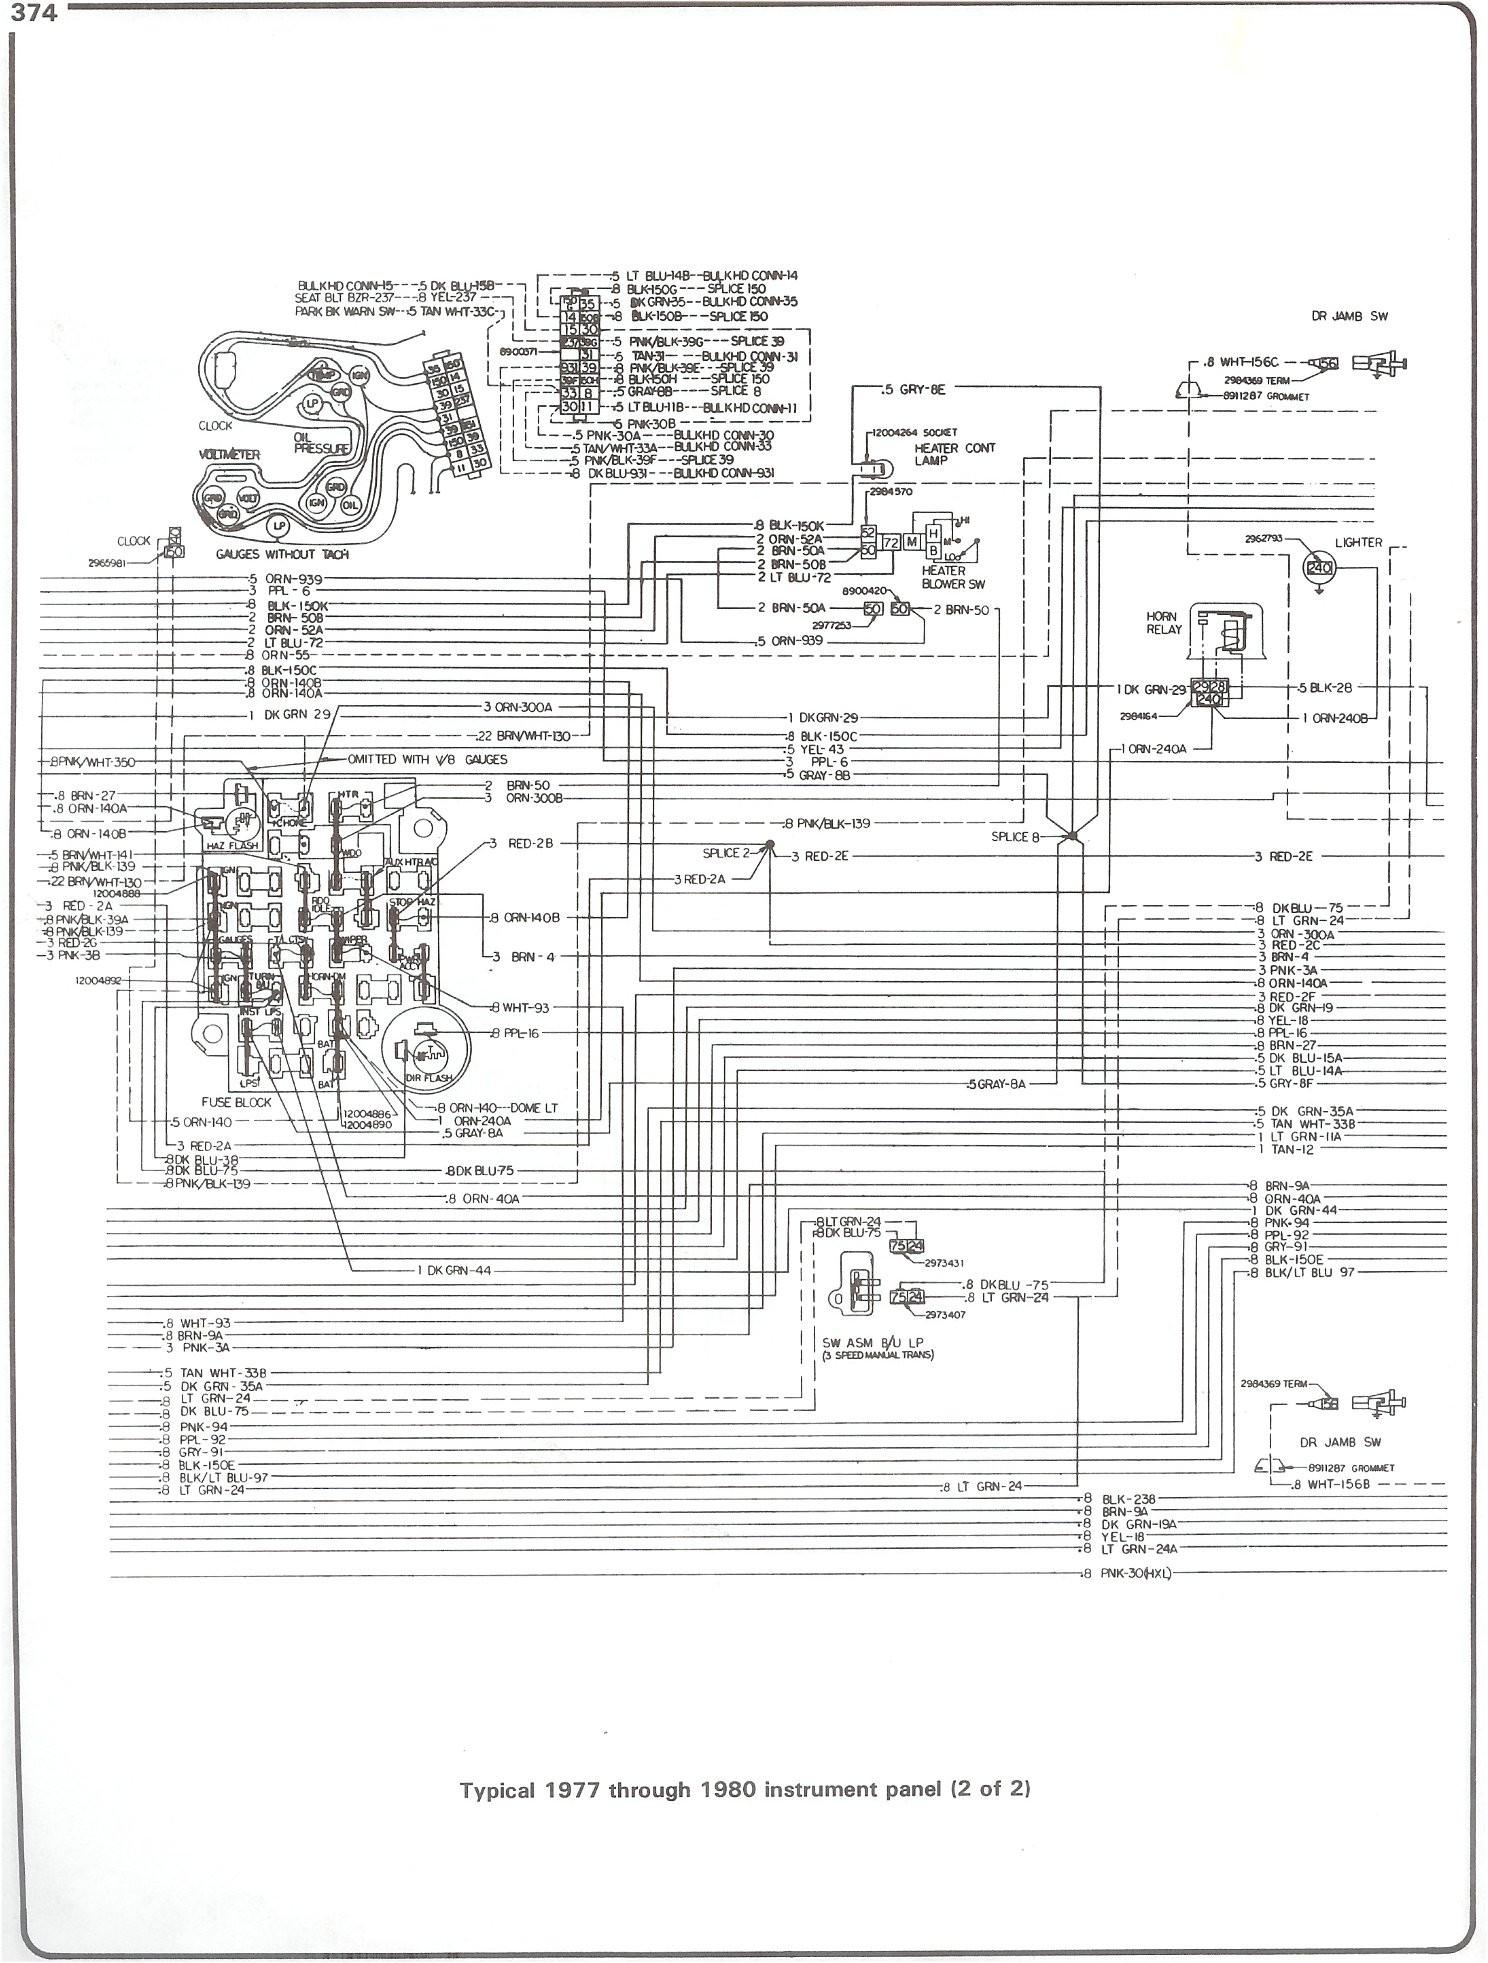 hight resolution of wiring diagram 1983 350 chevy k10 schema wiring diagram84 k10 wiring diagram wiring diagram wiring diagram